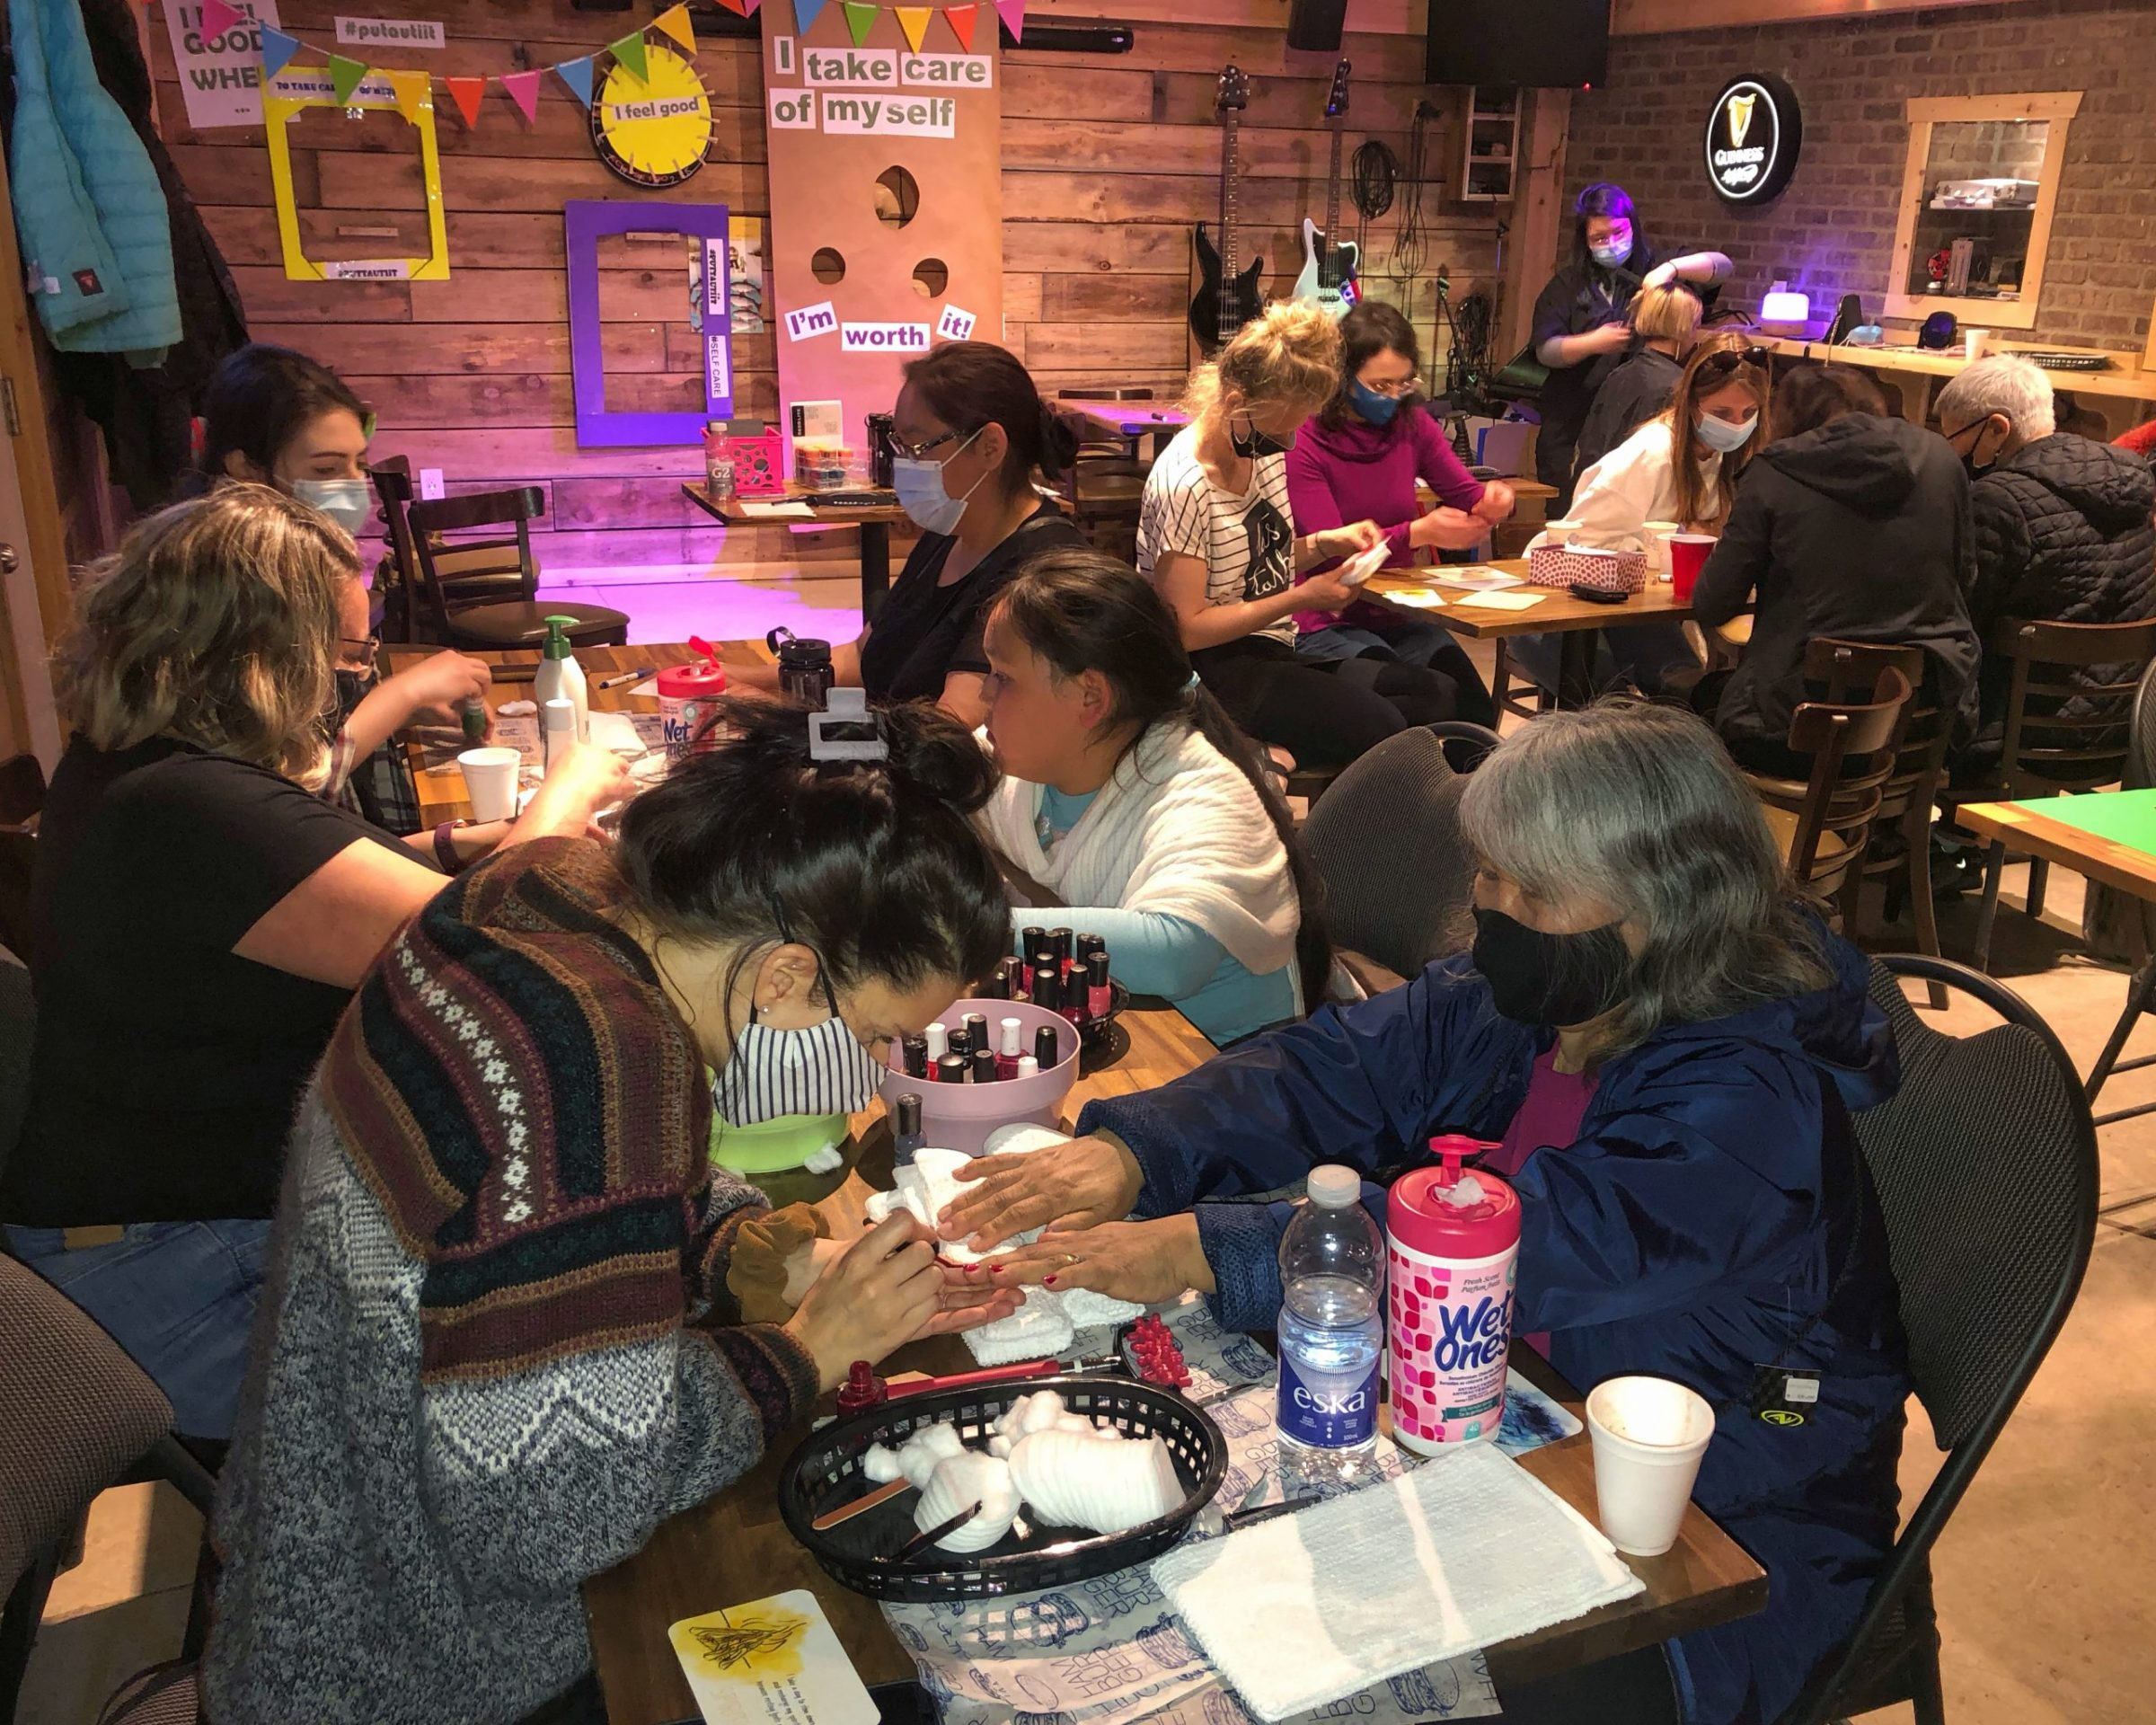 Kuujjuaq residents receive free manicures on Friday, as part of the Ungava Wellness Program's Puttautiit month-long mental health activities and workshops. The event, held at Nuna Golf, also offered massages, beading, haircuts and a funny photo booth, along with coffee, tea, smoothies and healthy snacks. (Photo by Isabelle Dubois)